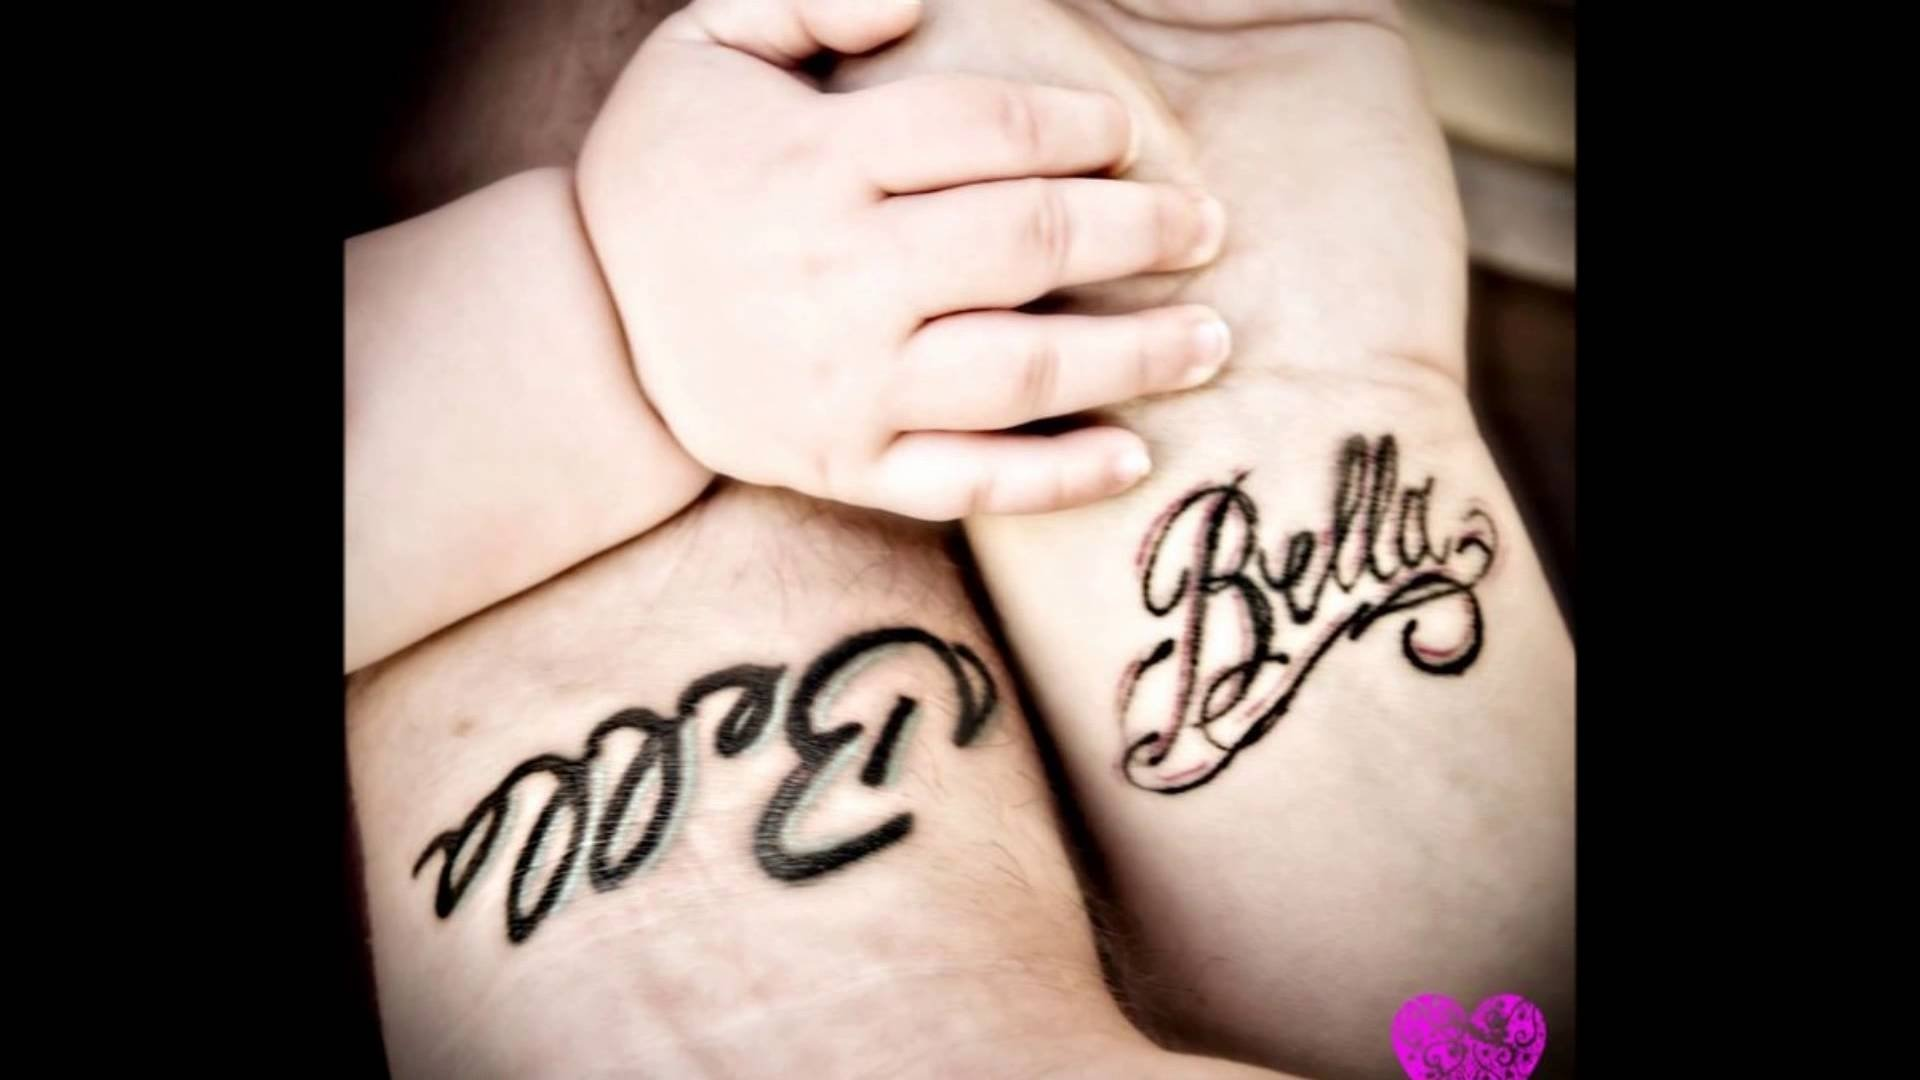 10 Unique Child Tattoo Ideas For Mom mom and daughter tattoo ideas youtube 1 2020